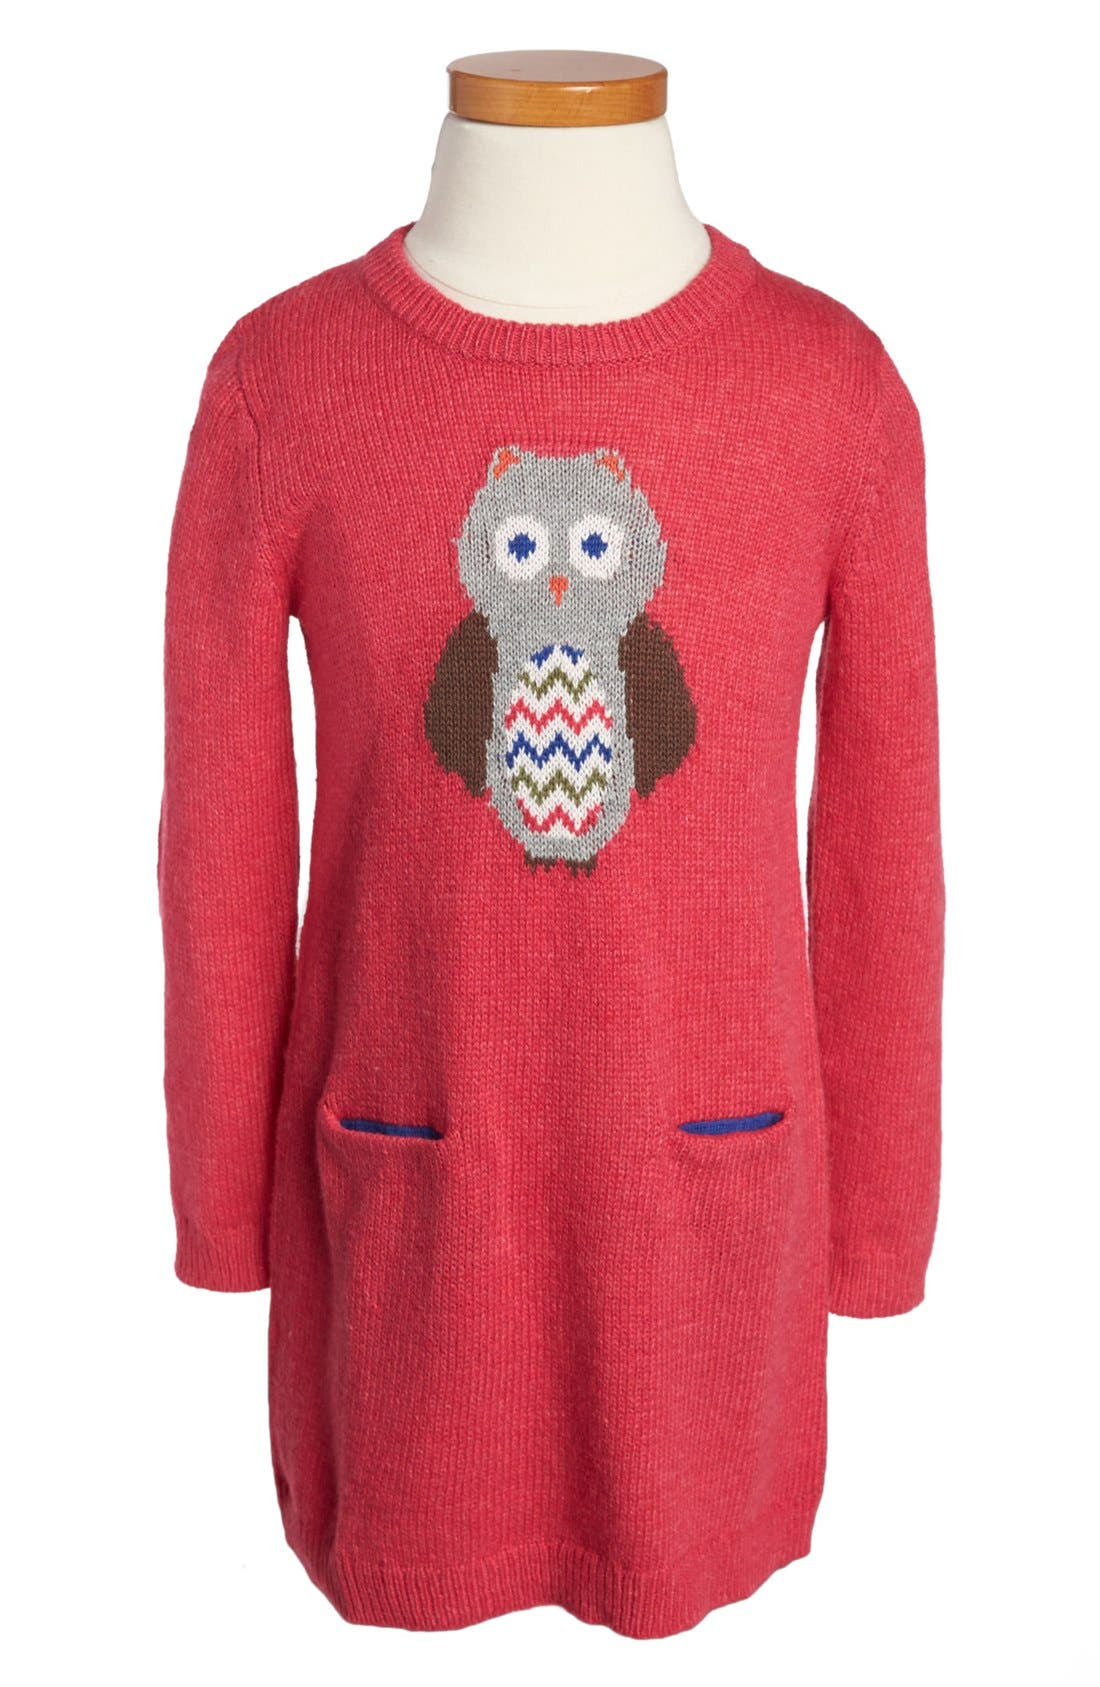 Main Image - Tucker + Tate 'Chantel' Intarsia Knit Dress (Toddler Girls)